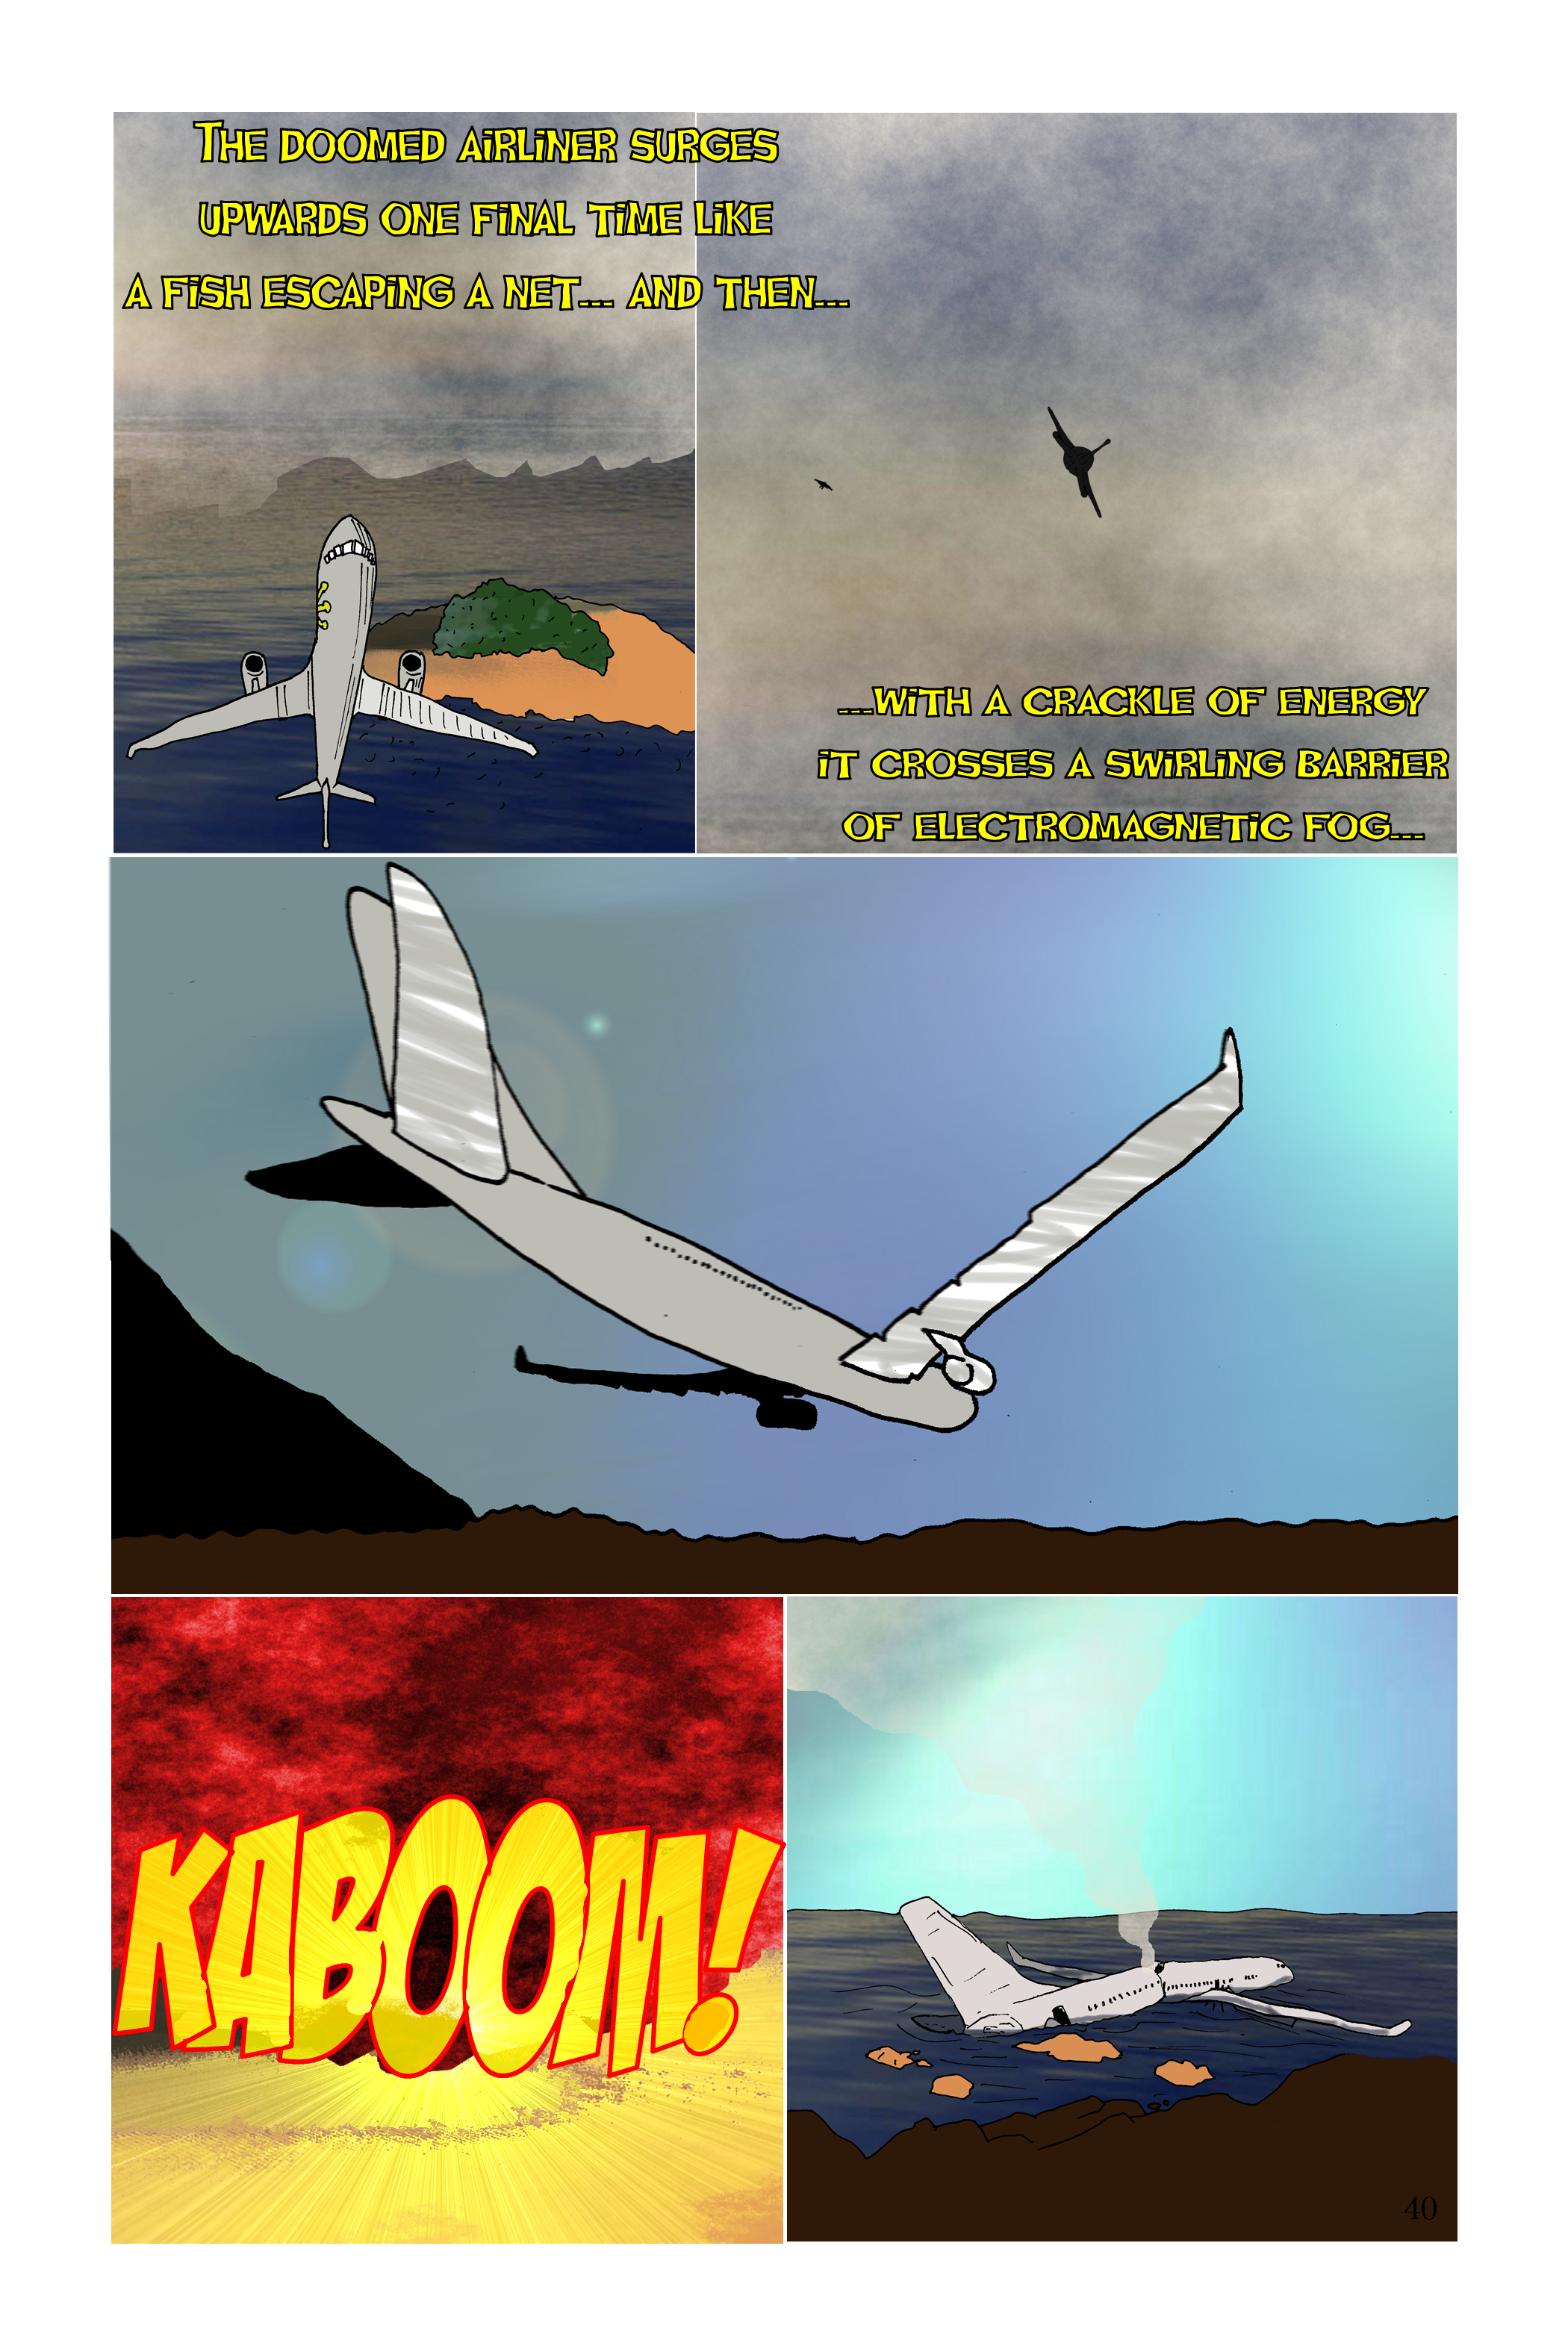 KABOOM cliffhanger page from individual issue 1